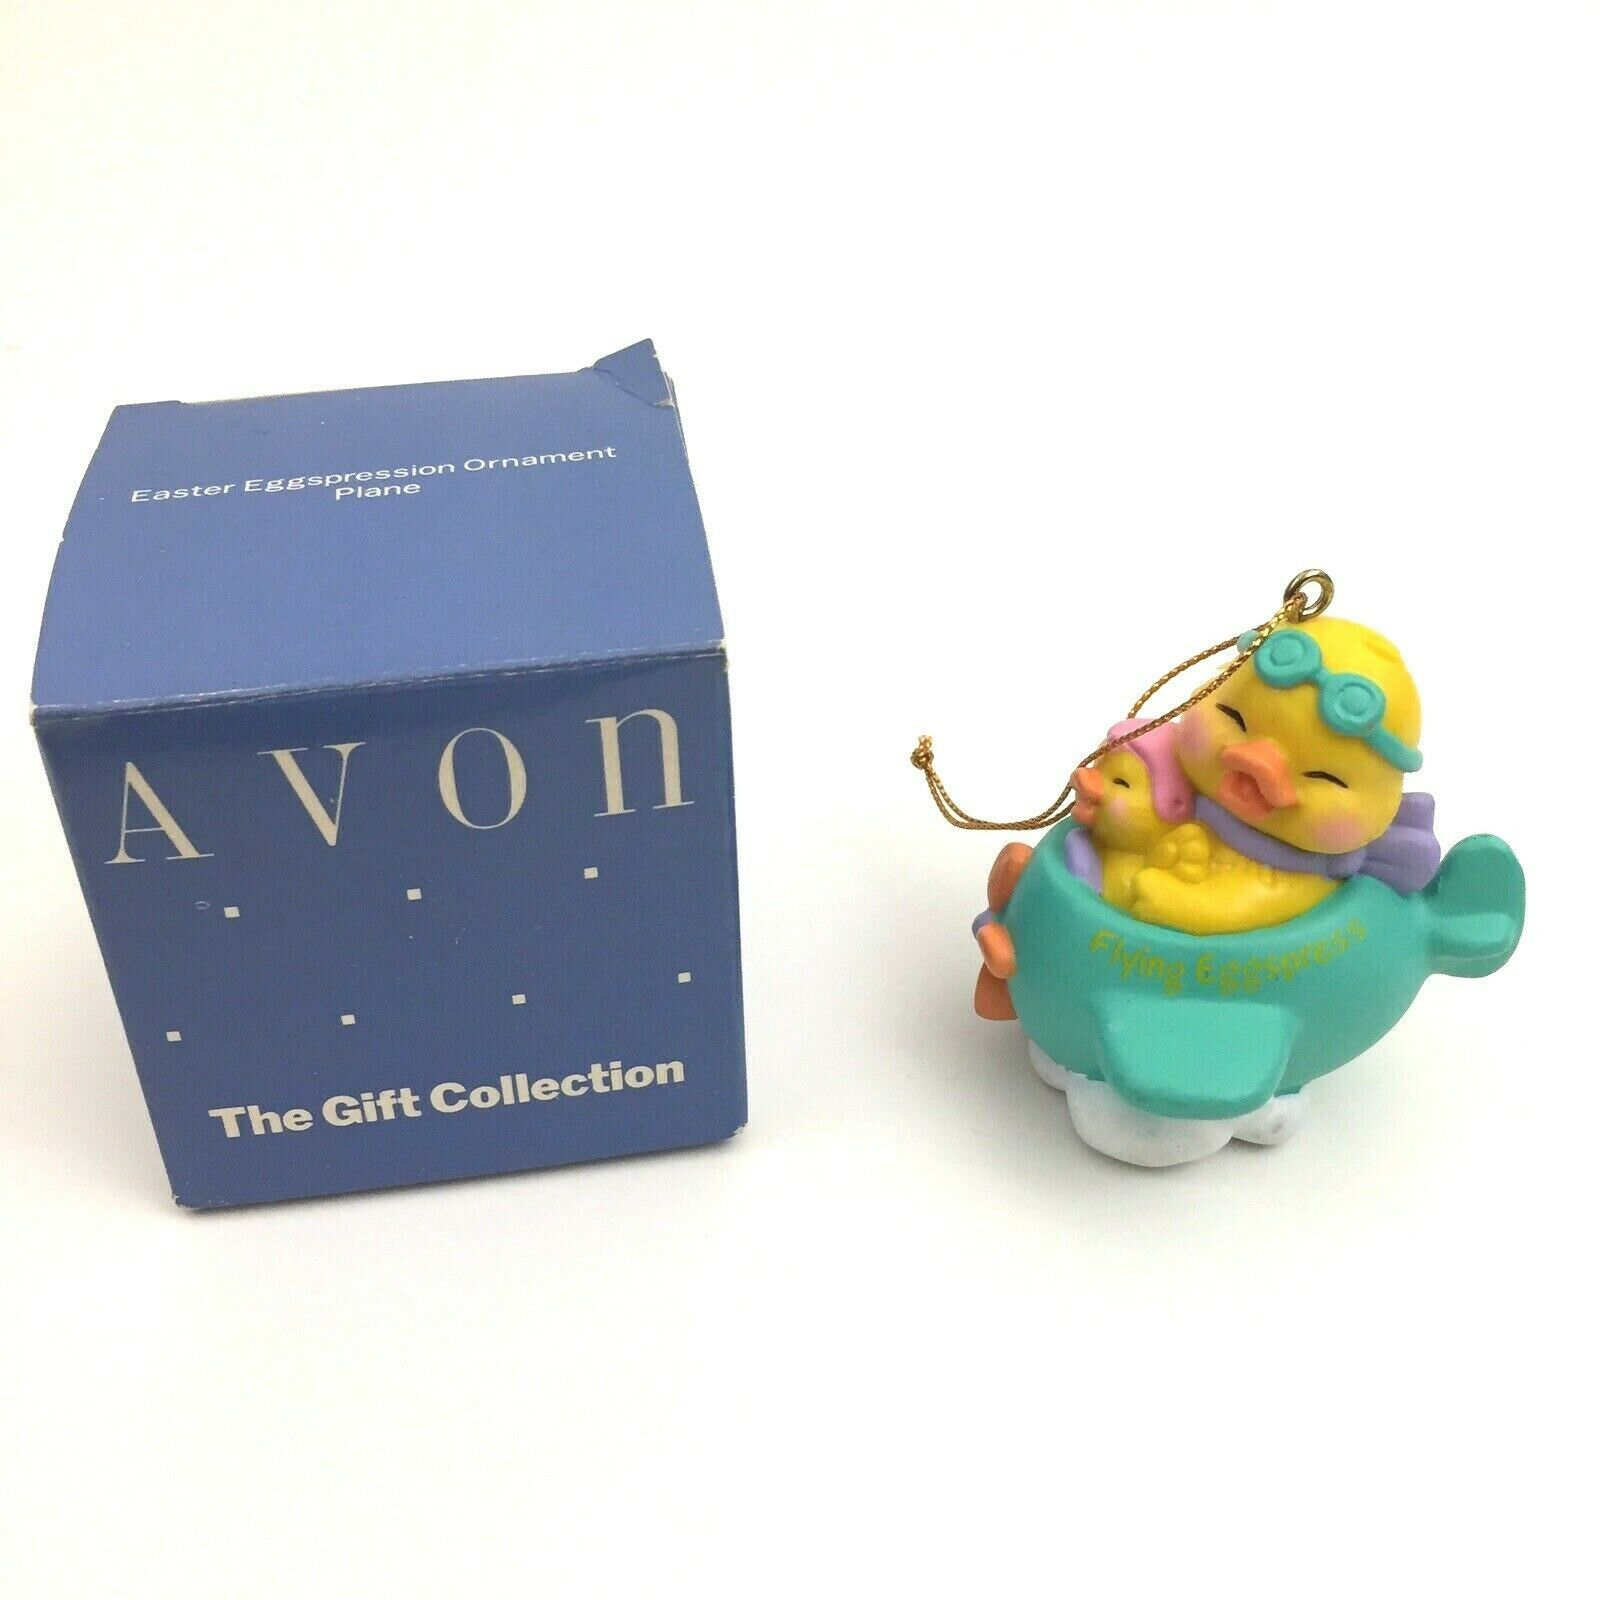 AVON Vintage Easter Flying Eggspression Ornament Chicks in Plane in Original Box